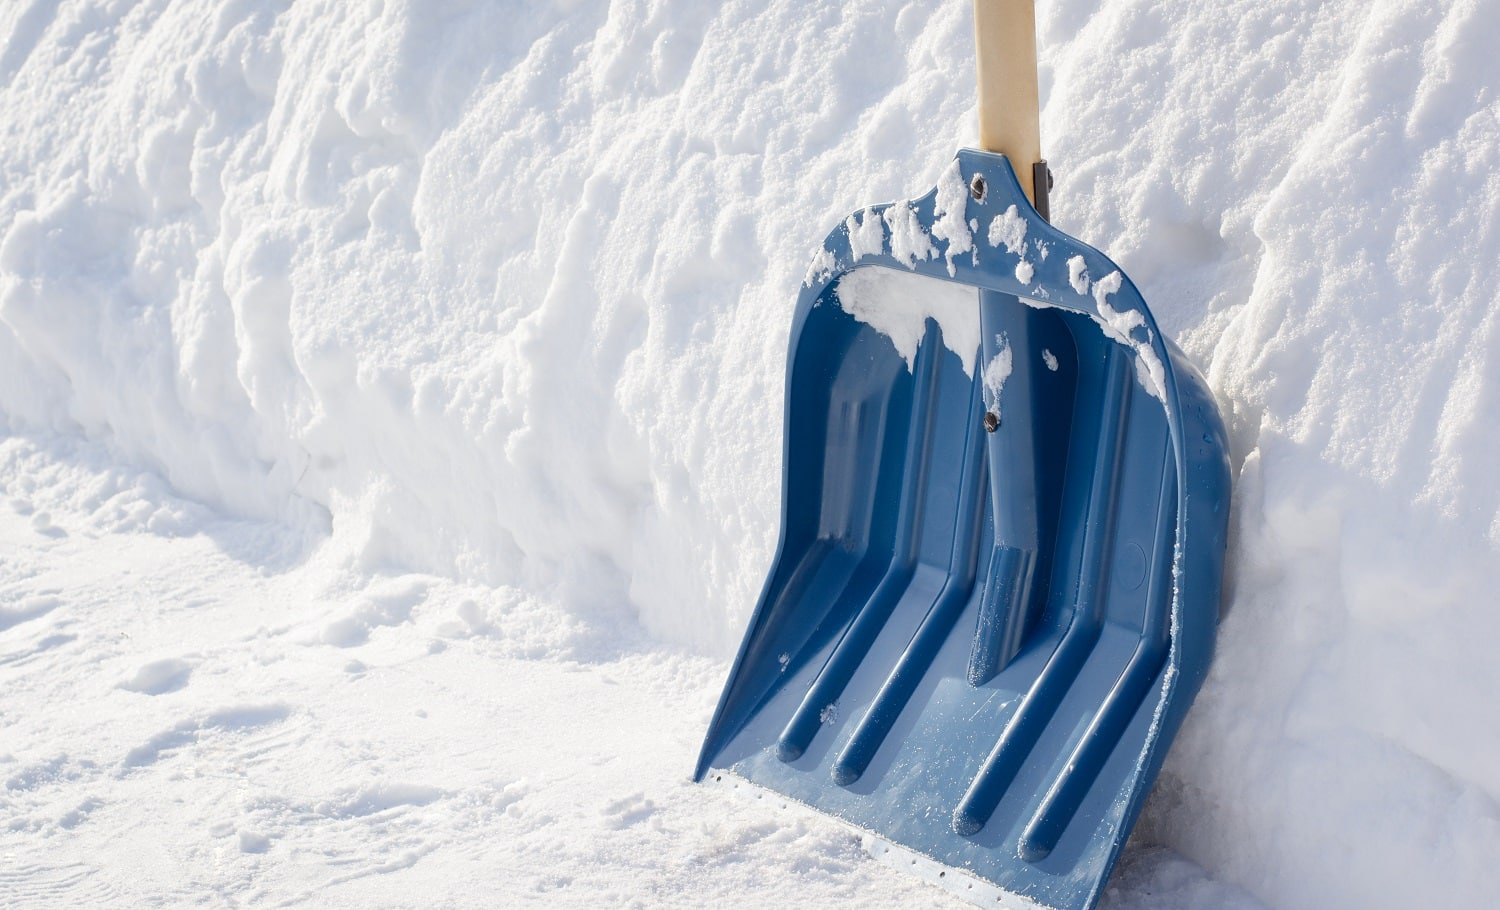 Snow shovel with a wooden handle after cleaning sidewalk in the street